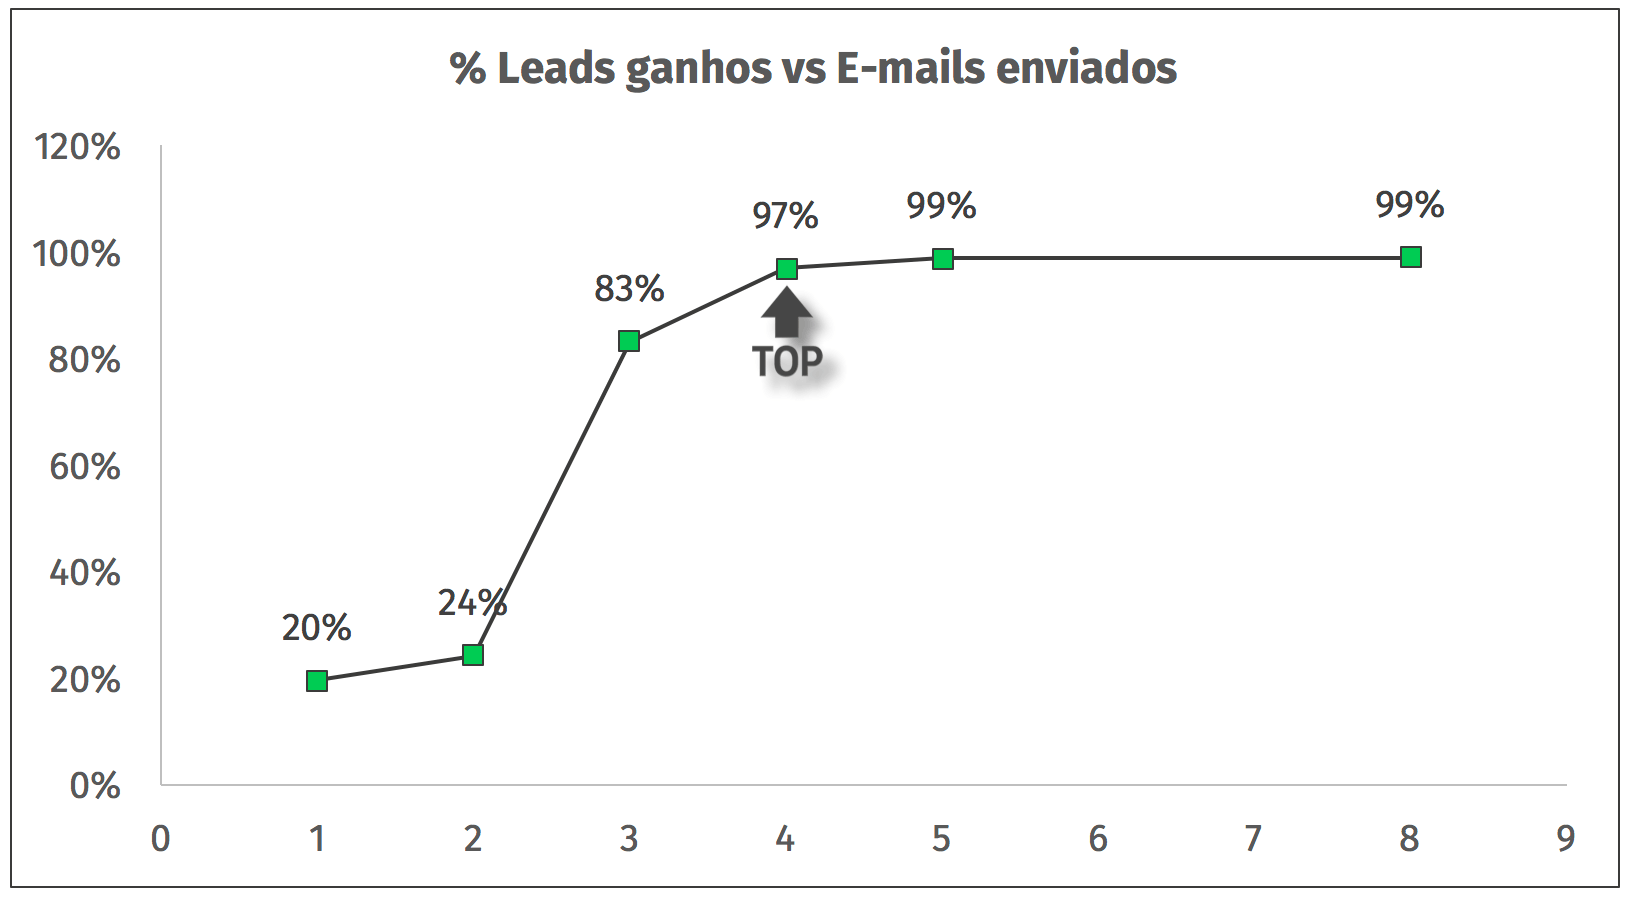 numero de emails vs leads ganhos